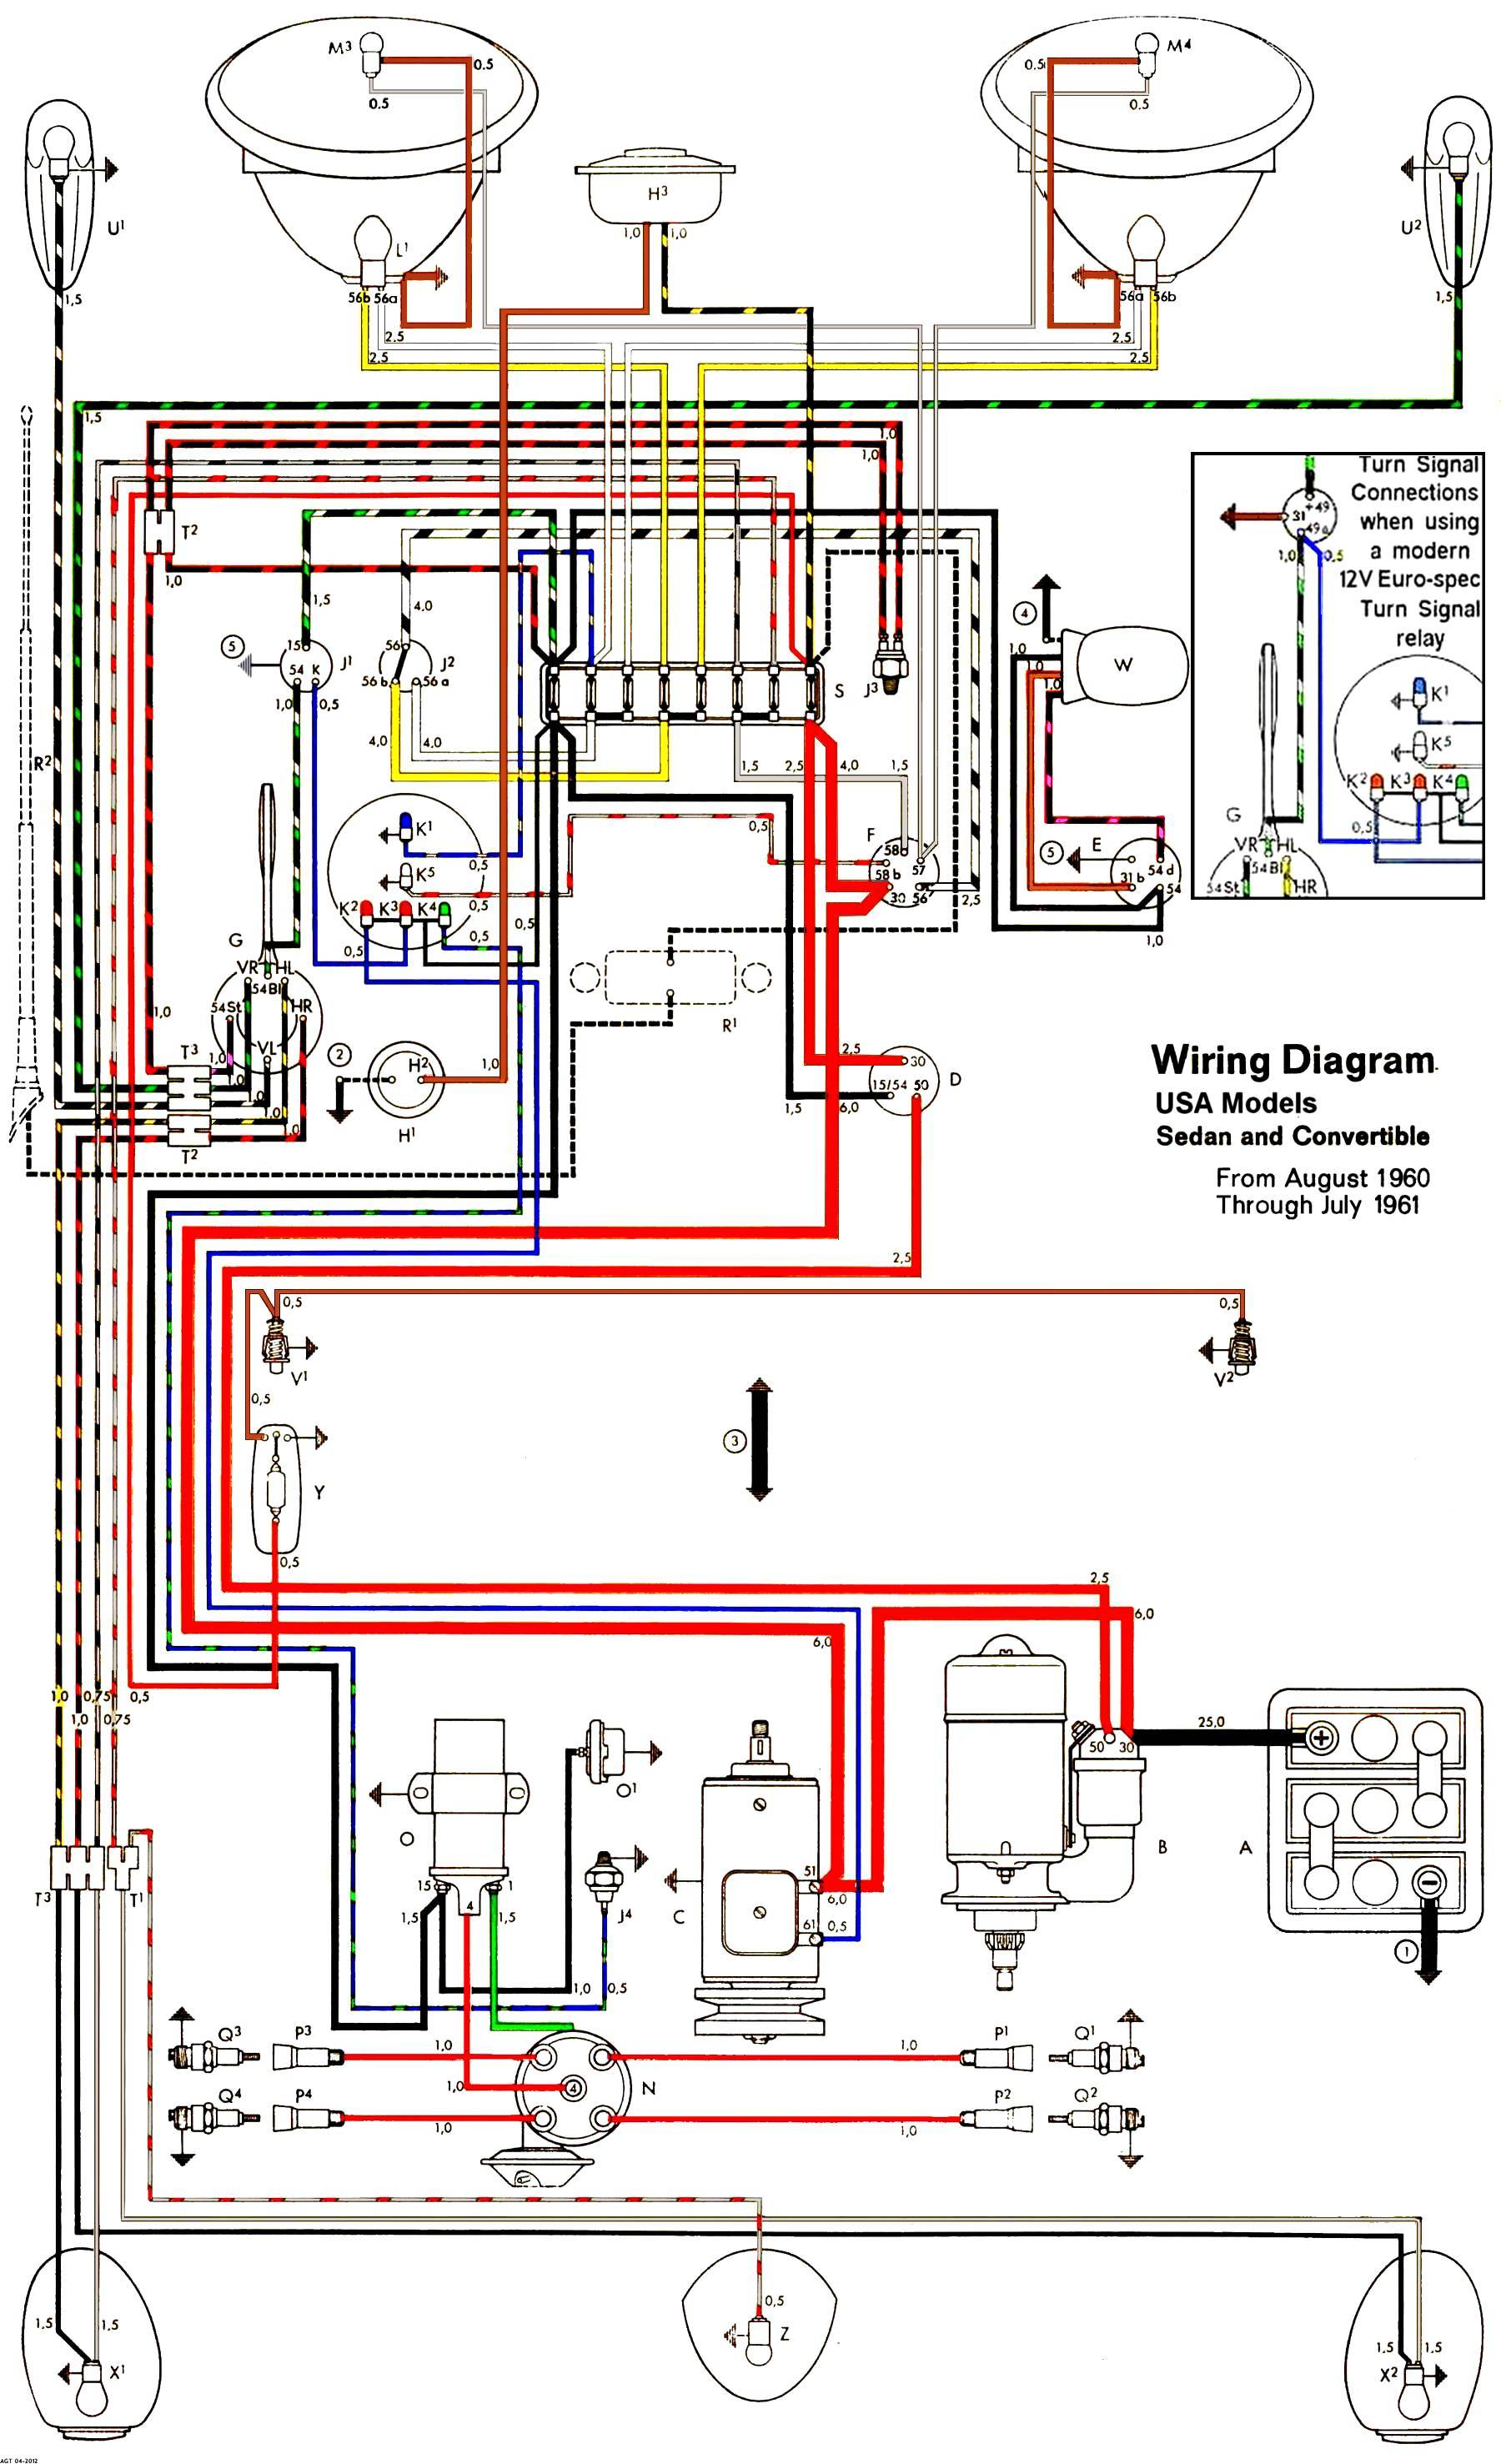 Light Switch Wiring Diagram 1970 Camaro Opinions About 1977 Thesamba Com Type 1 Diagrams Rh 1969 Schematic 1971 Wiper